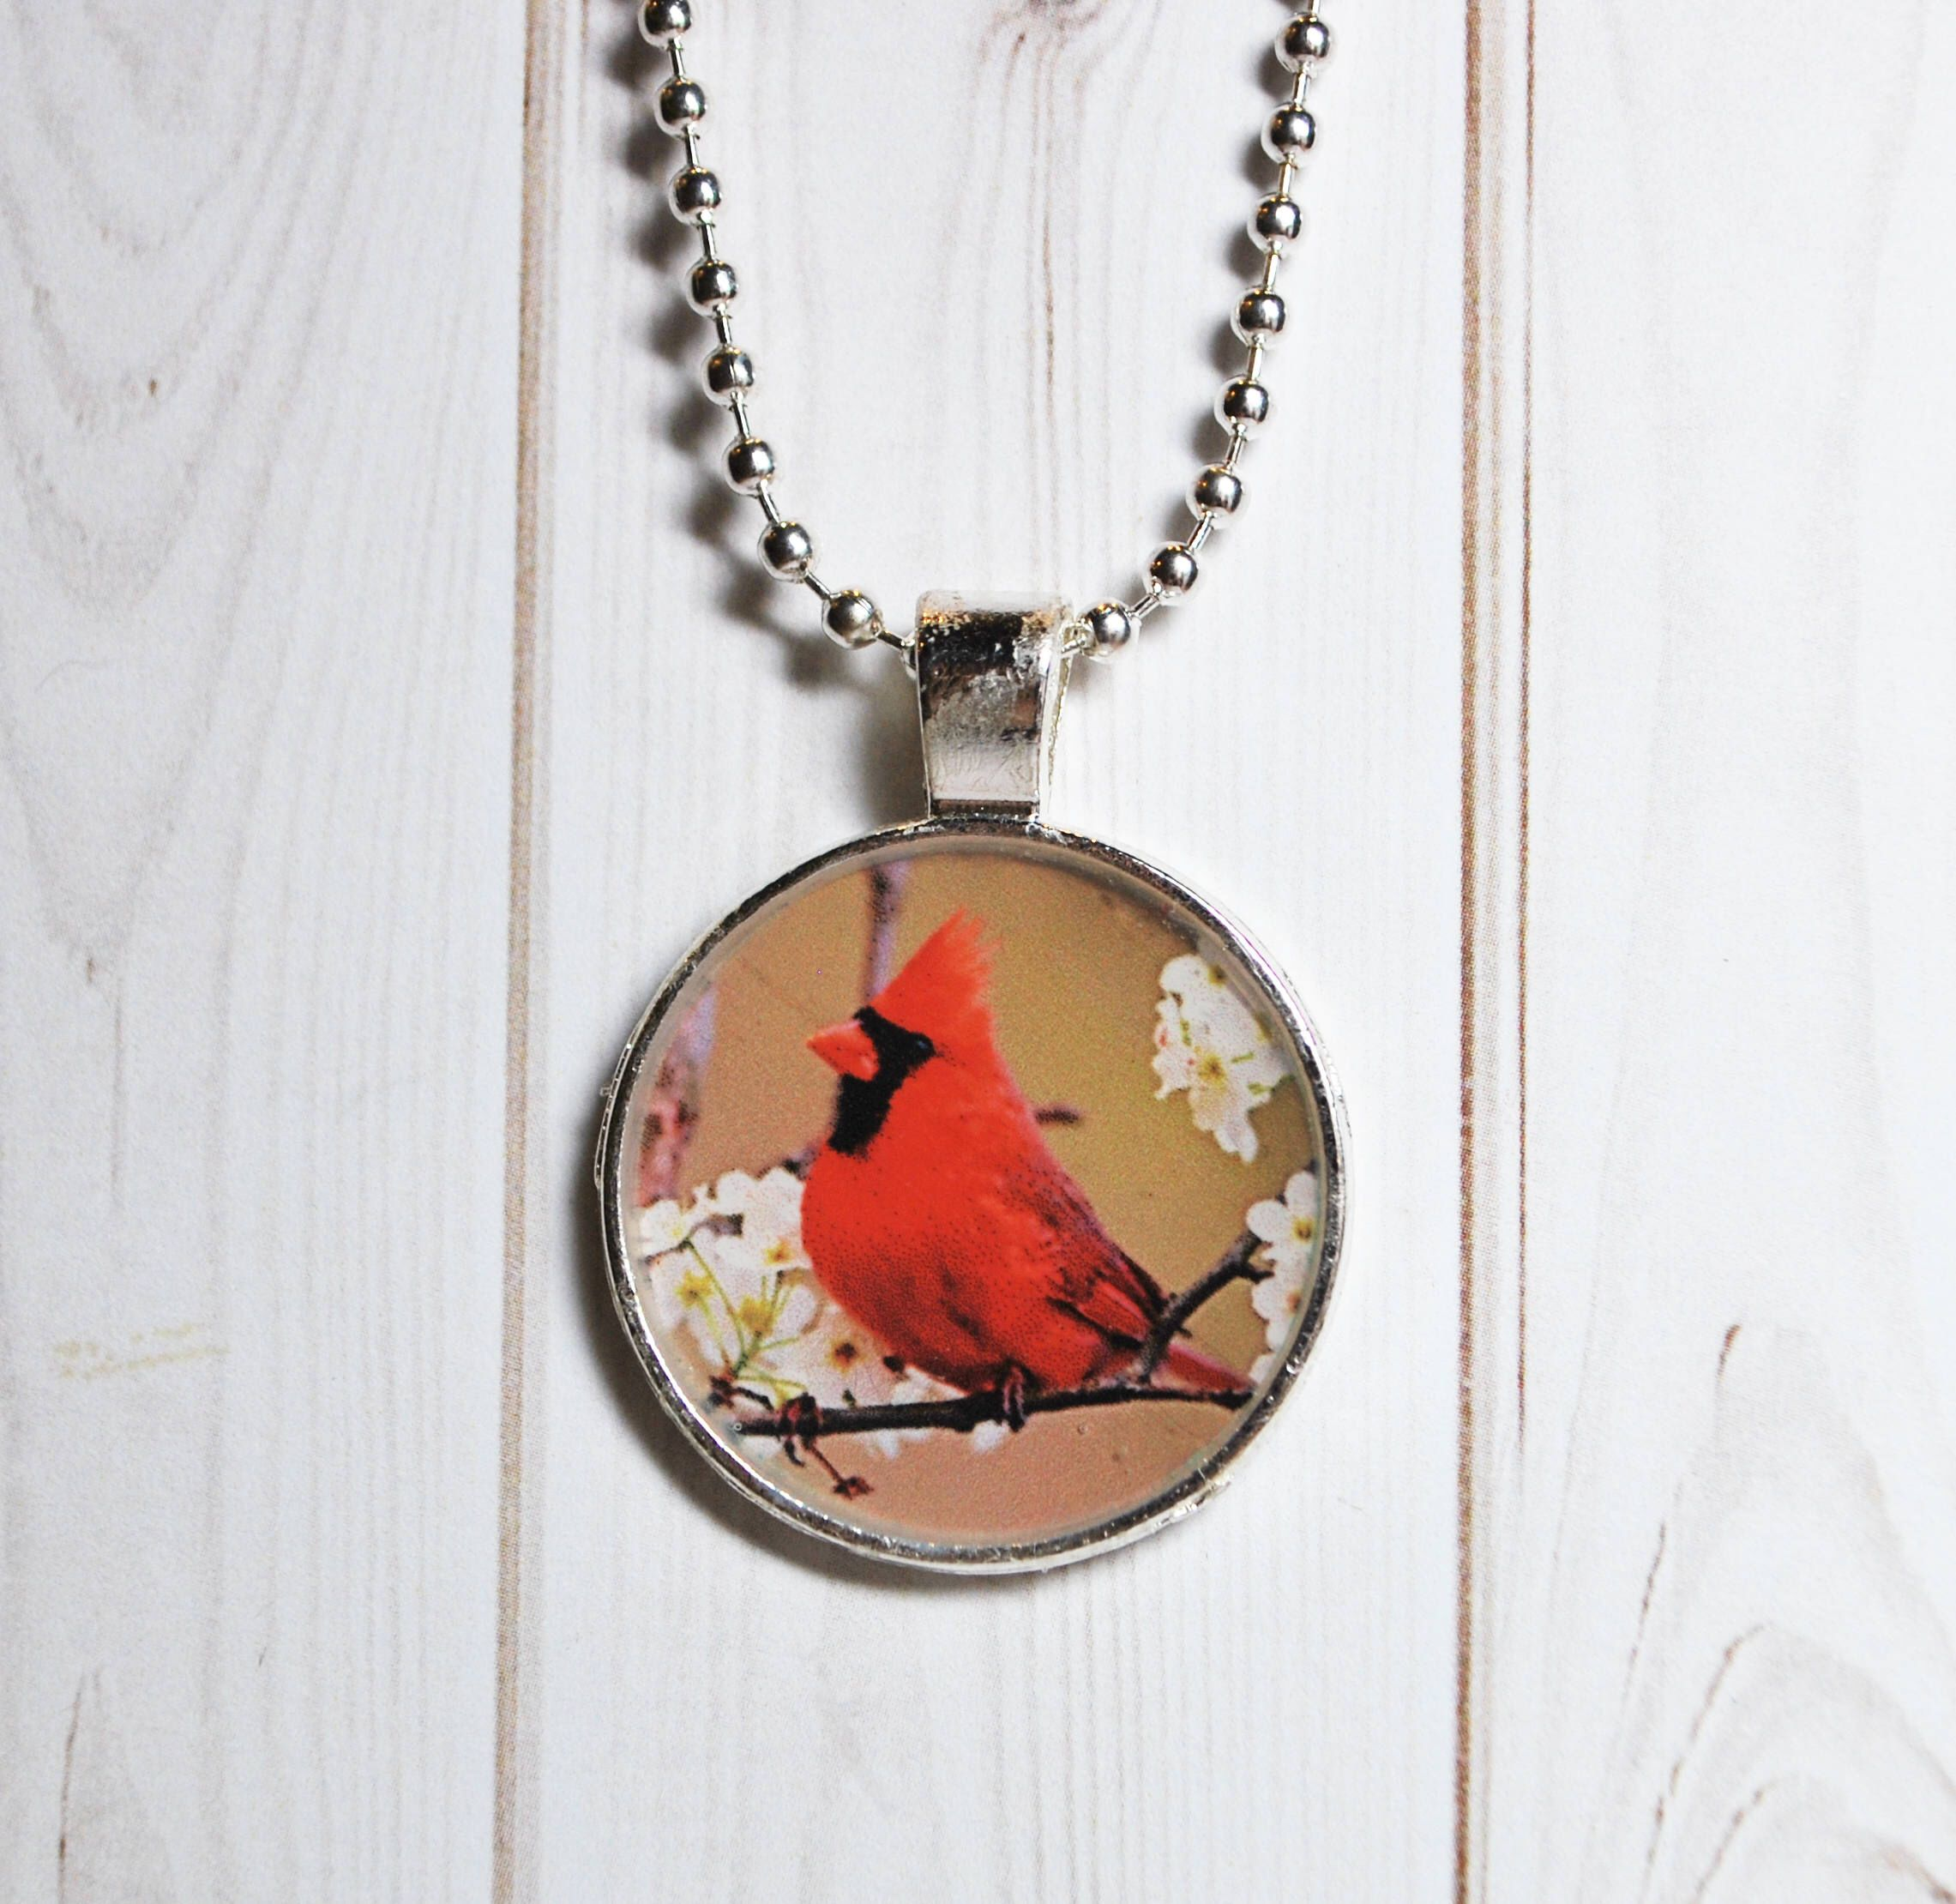 on groom wholesale necklaces cardinal w gift get shipping aliexpress custom wedding locket and buy pendants trendy free birds com bird red necklace